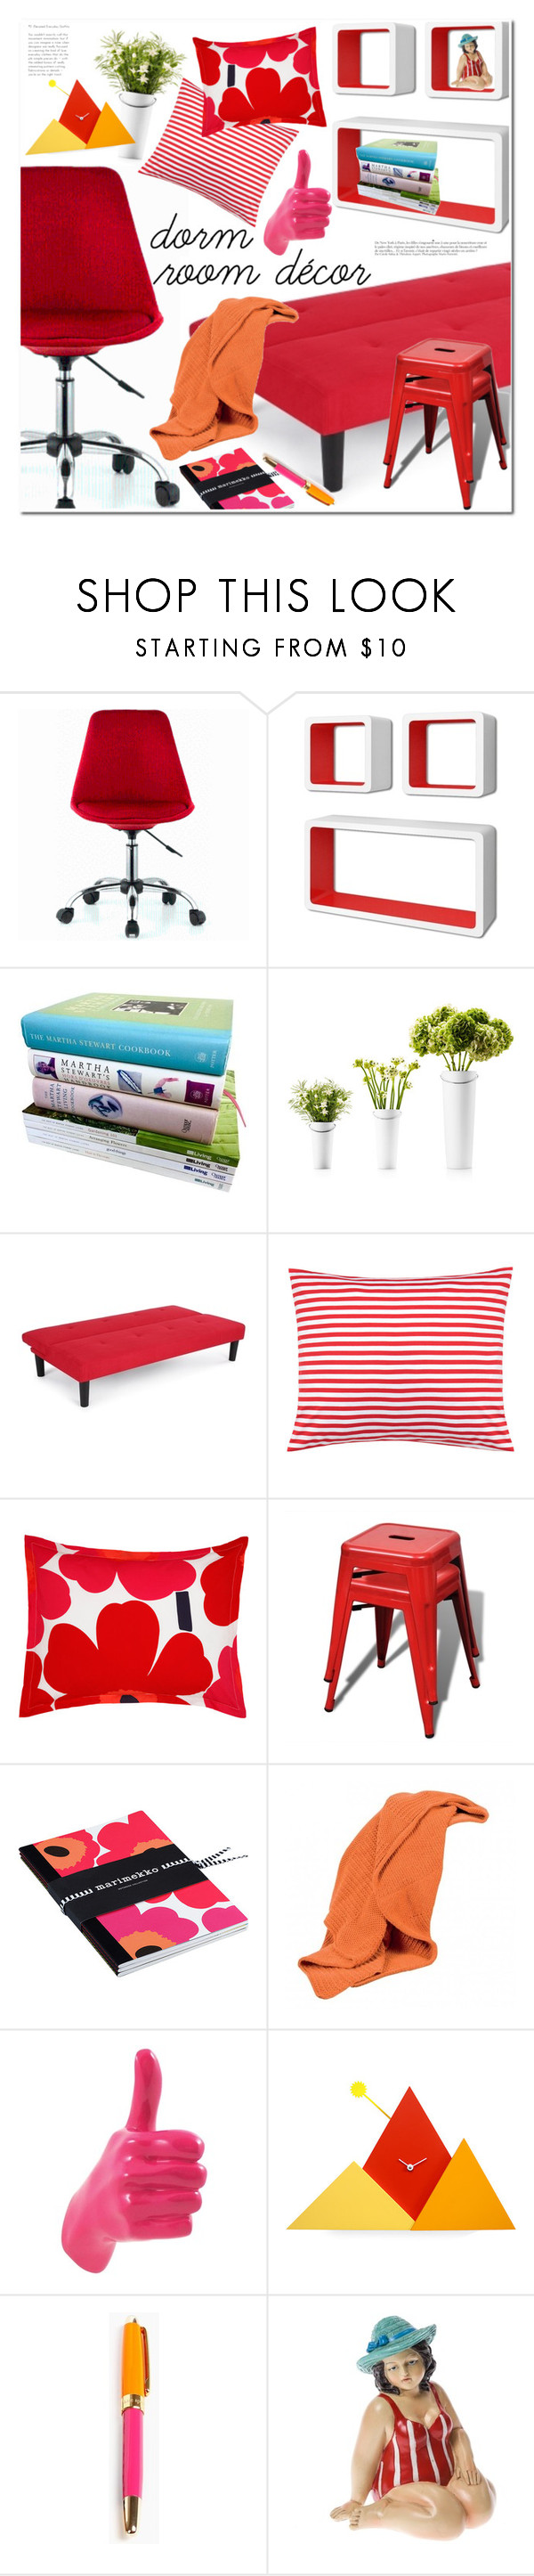 """Home Away From Home: Dorm Decor"" by ansev ❤ liked on Polyvore featuring interior, interiors, interior design, home, home decor, interior decorating, Martha Stewart, Eva Solo, Marimekko and Scapa Home"